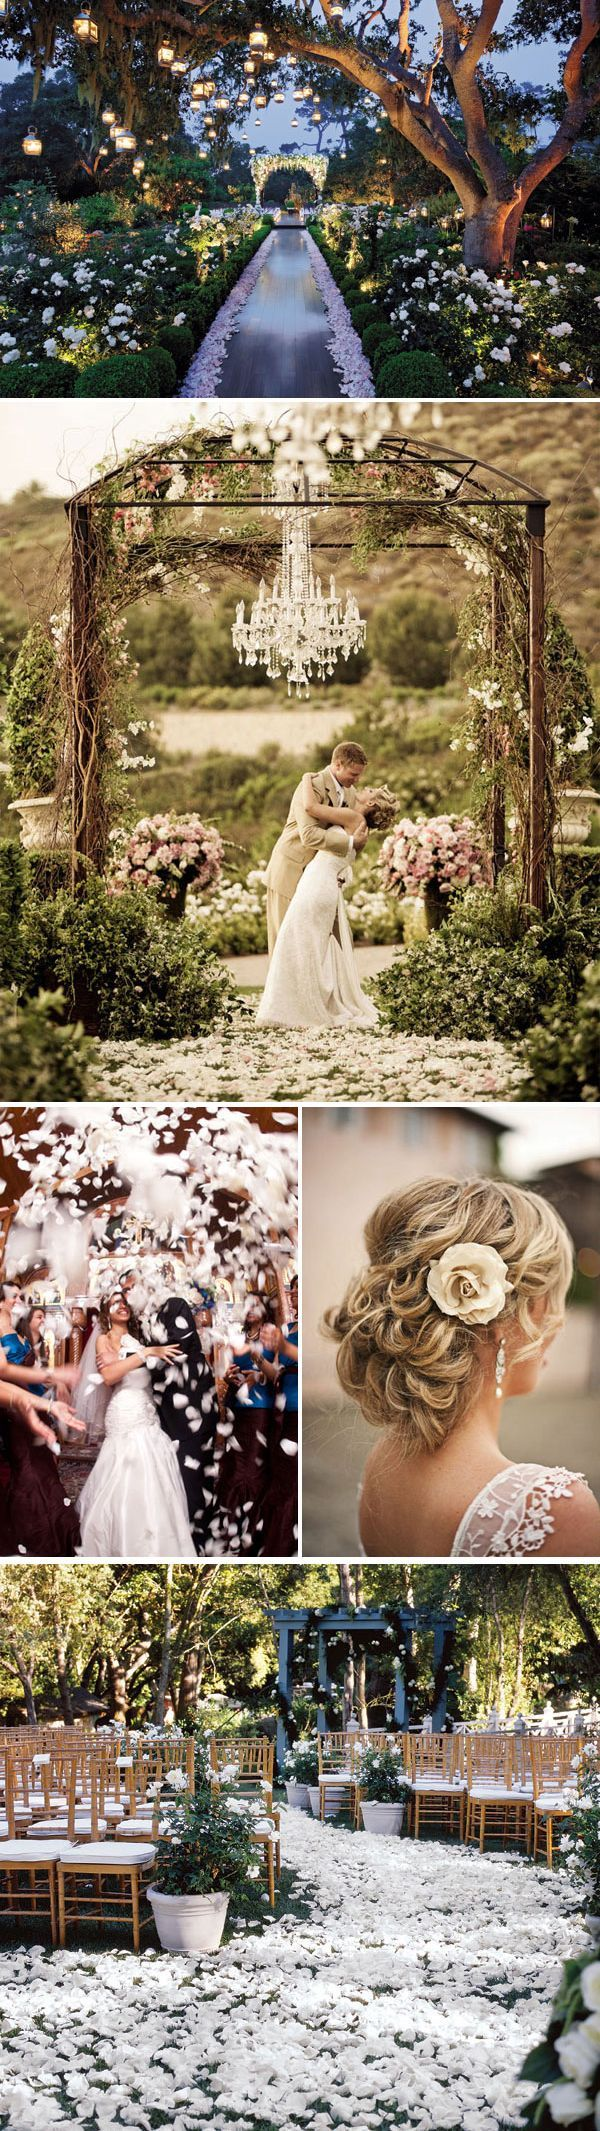 Garden wedding aisle decor   best My wedding ideas images on Pinterest  Wedding ideas